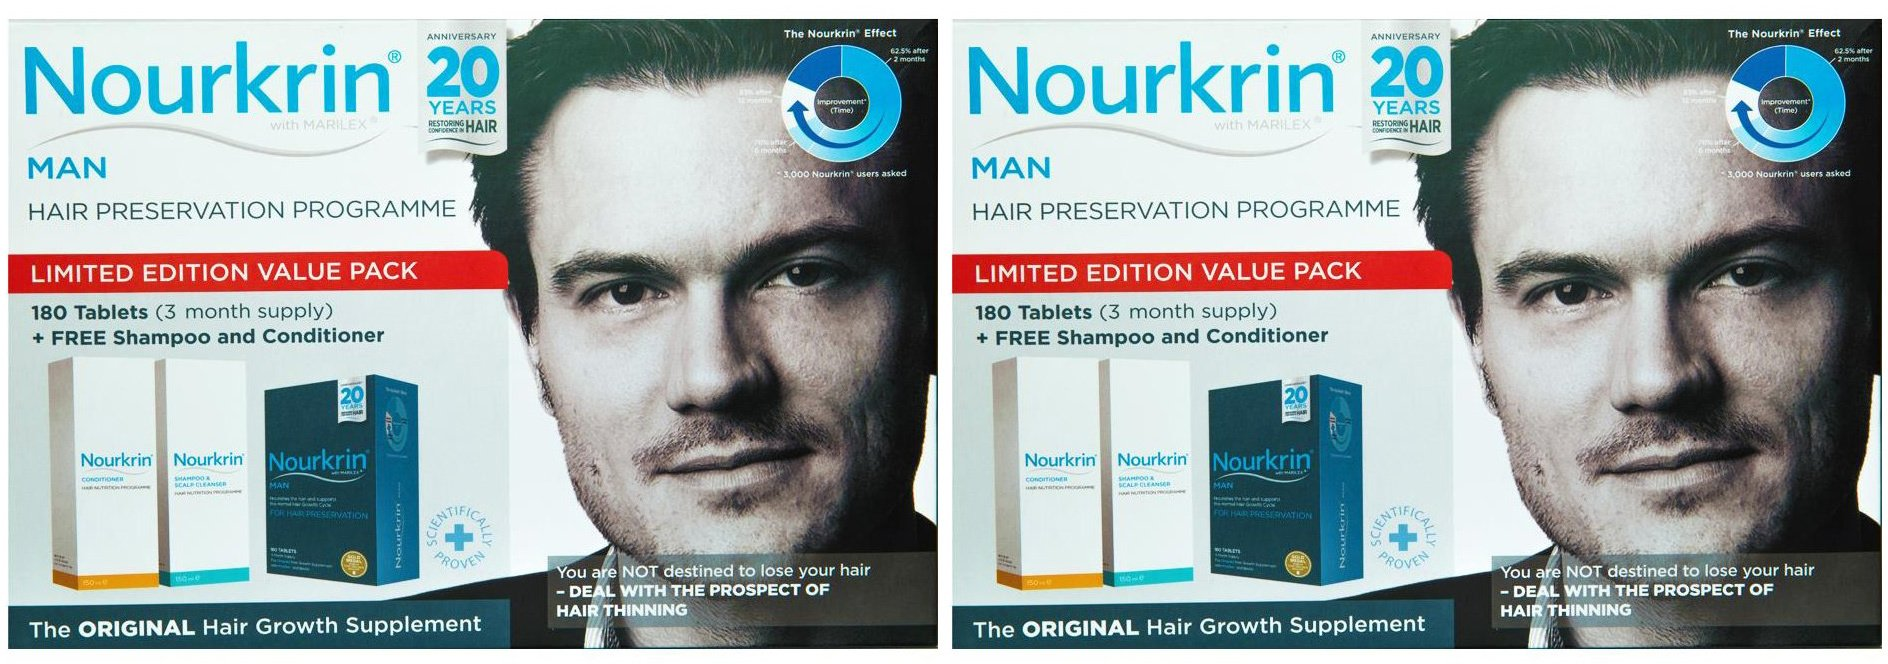 (2 Pack) - Nourkrin - Nourkrin Man Value Pack | 180's | 2 PACK BUNDLE